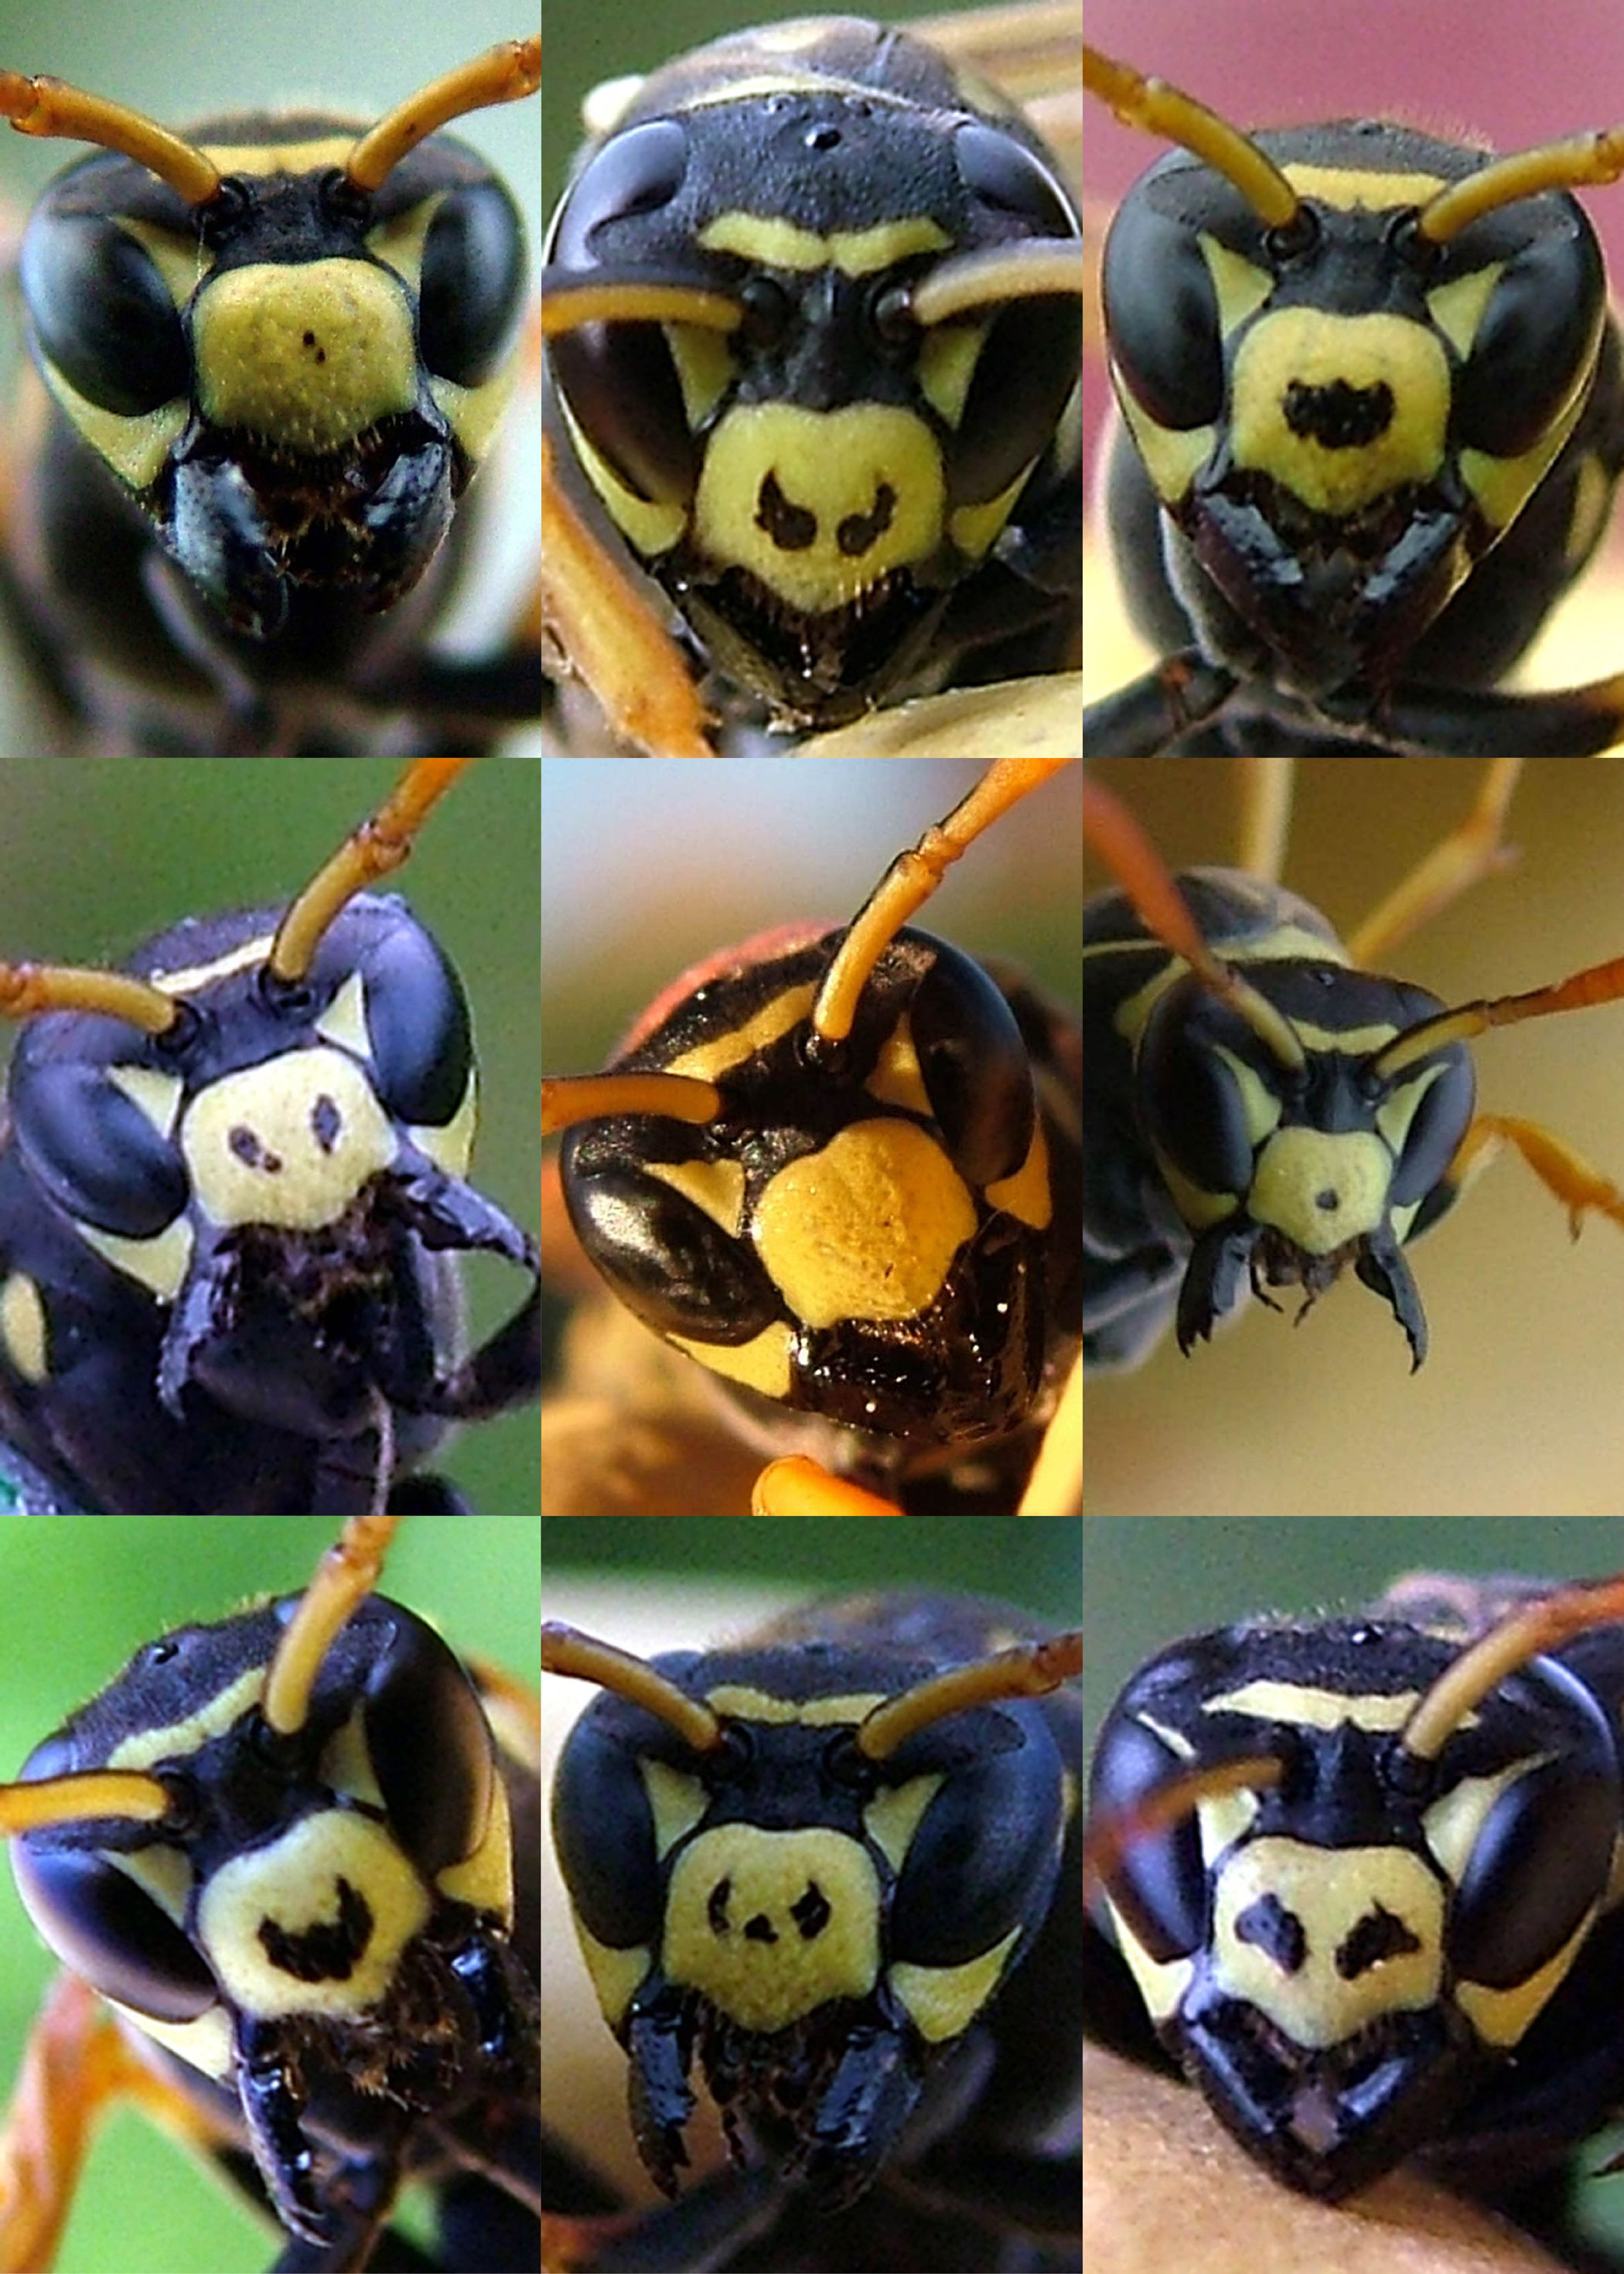 For wasps, spotty faces equal killer Kung Fu